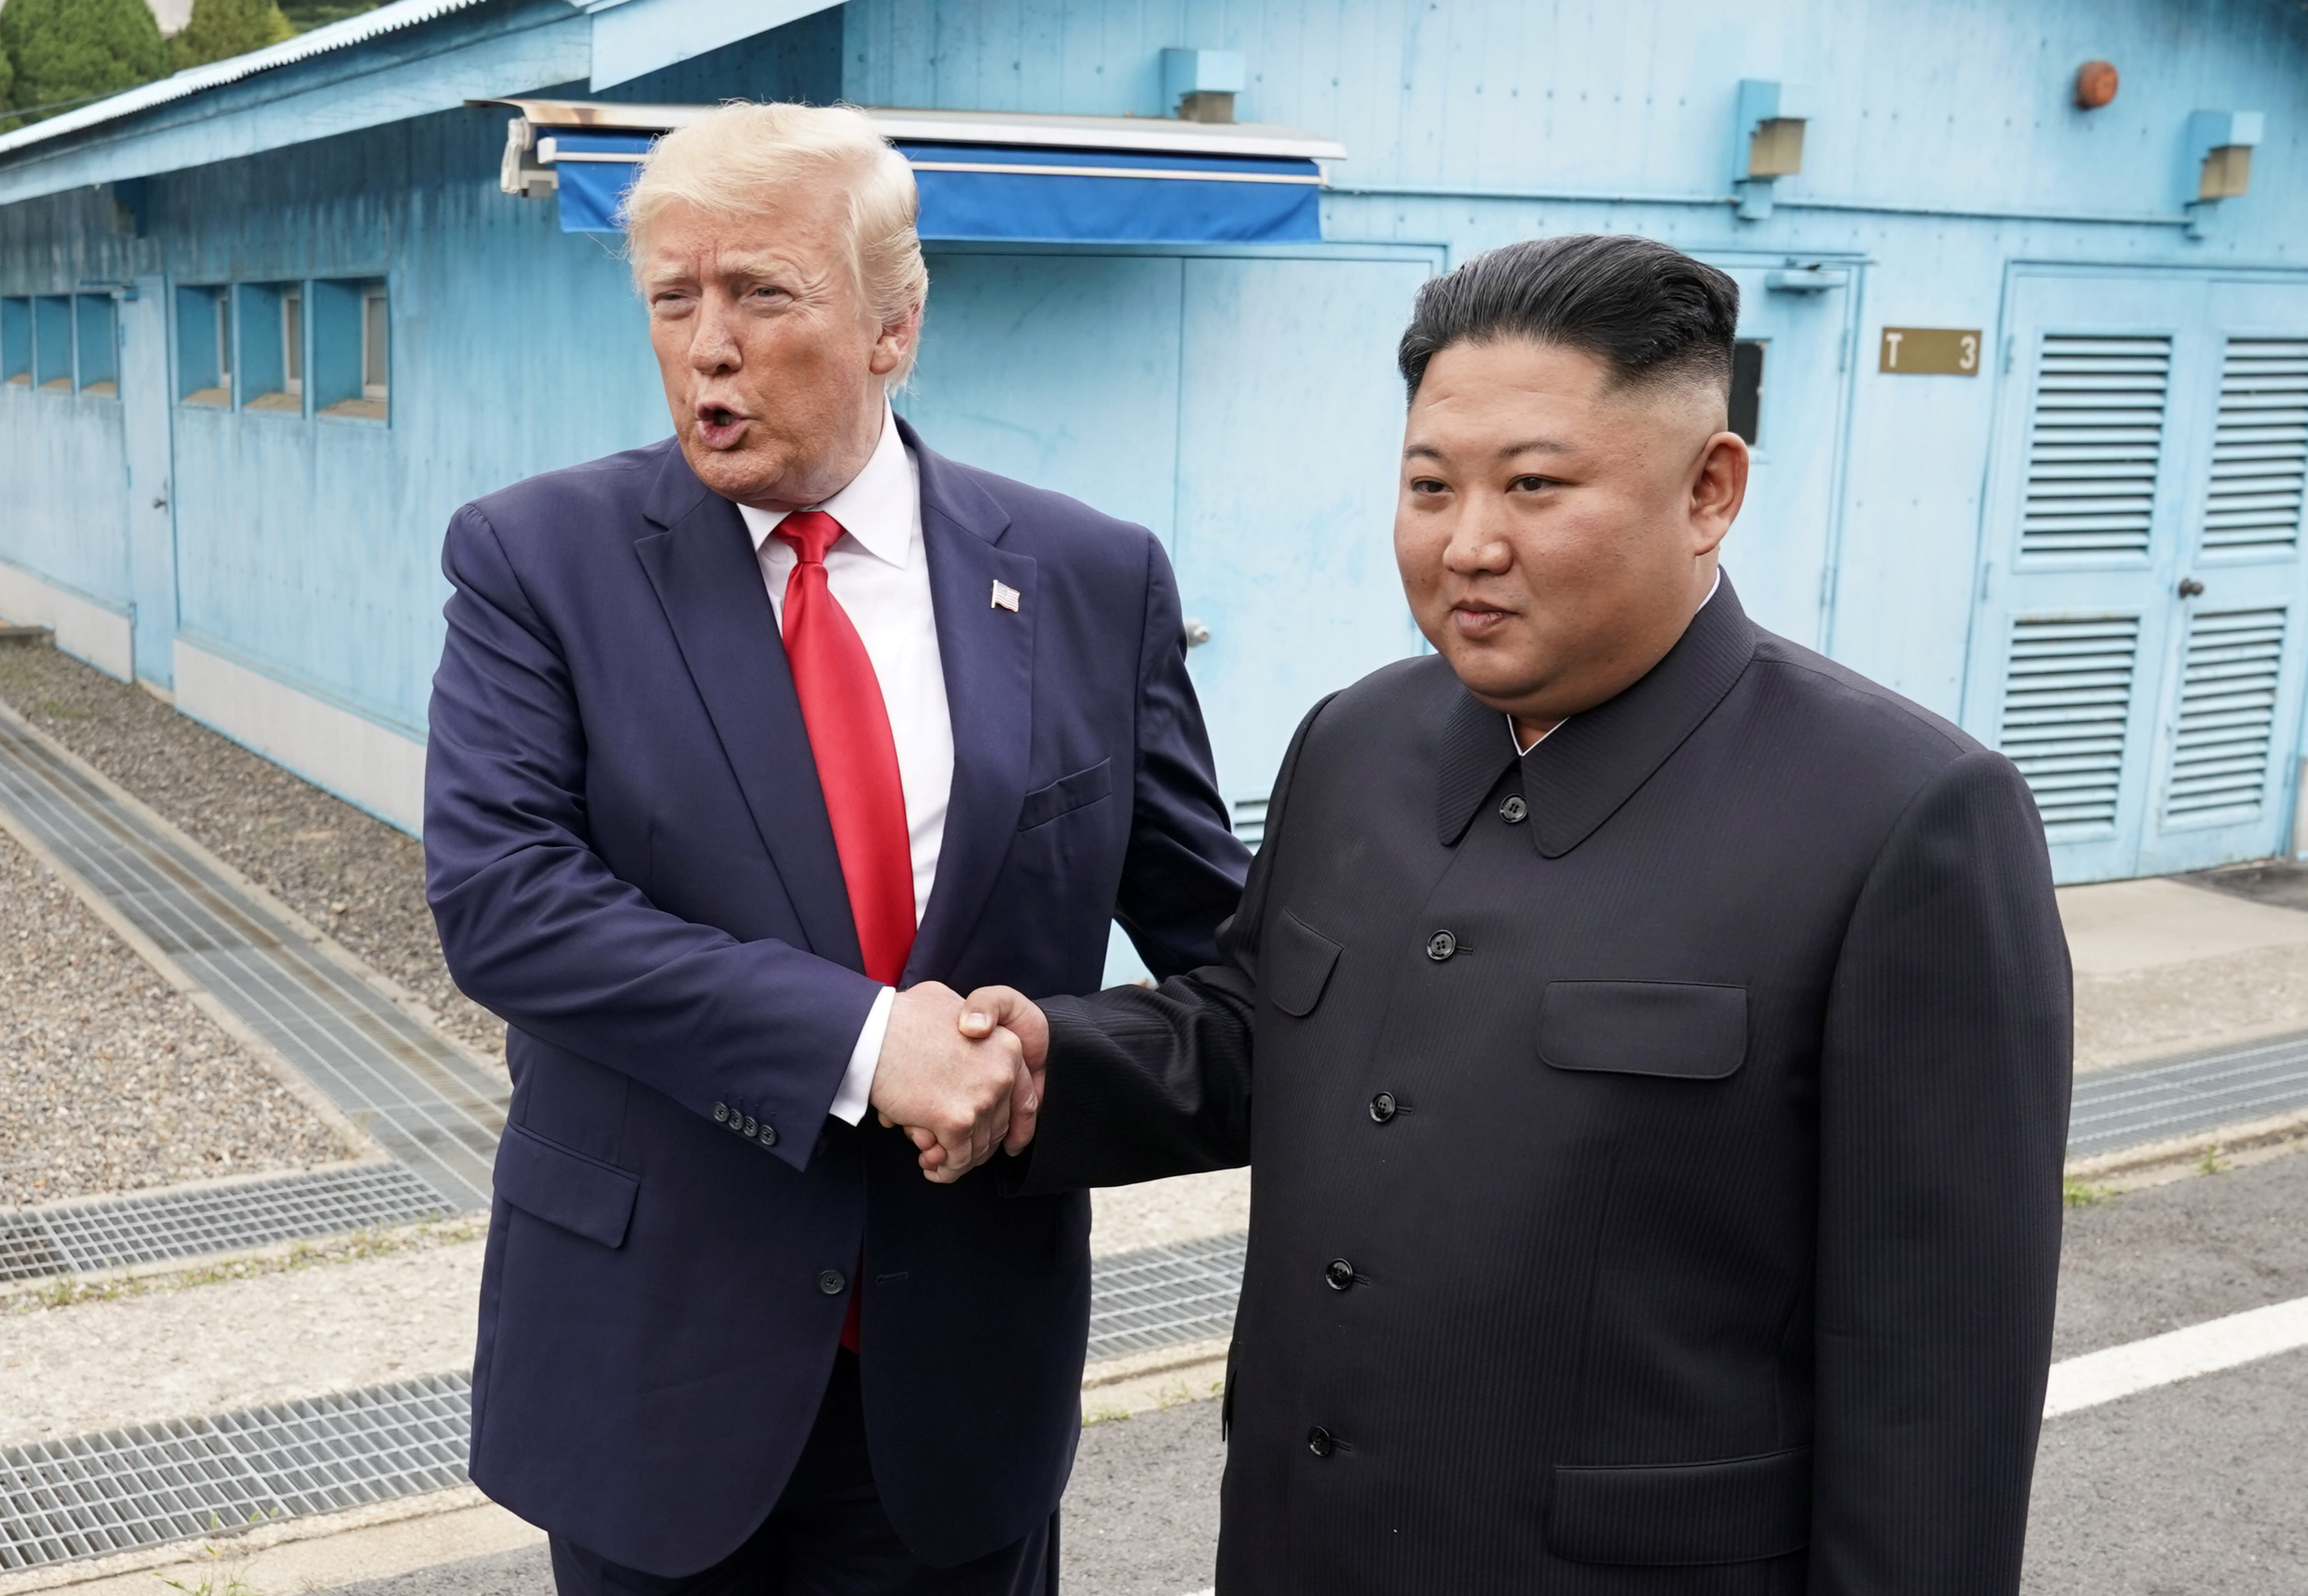 Trump says North Korea must denuclearize after North claims 'very important' test